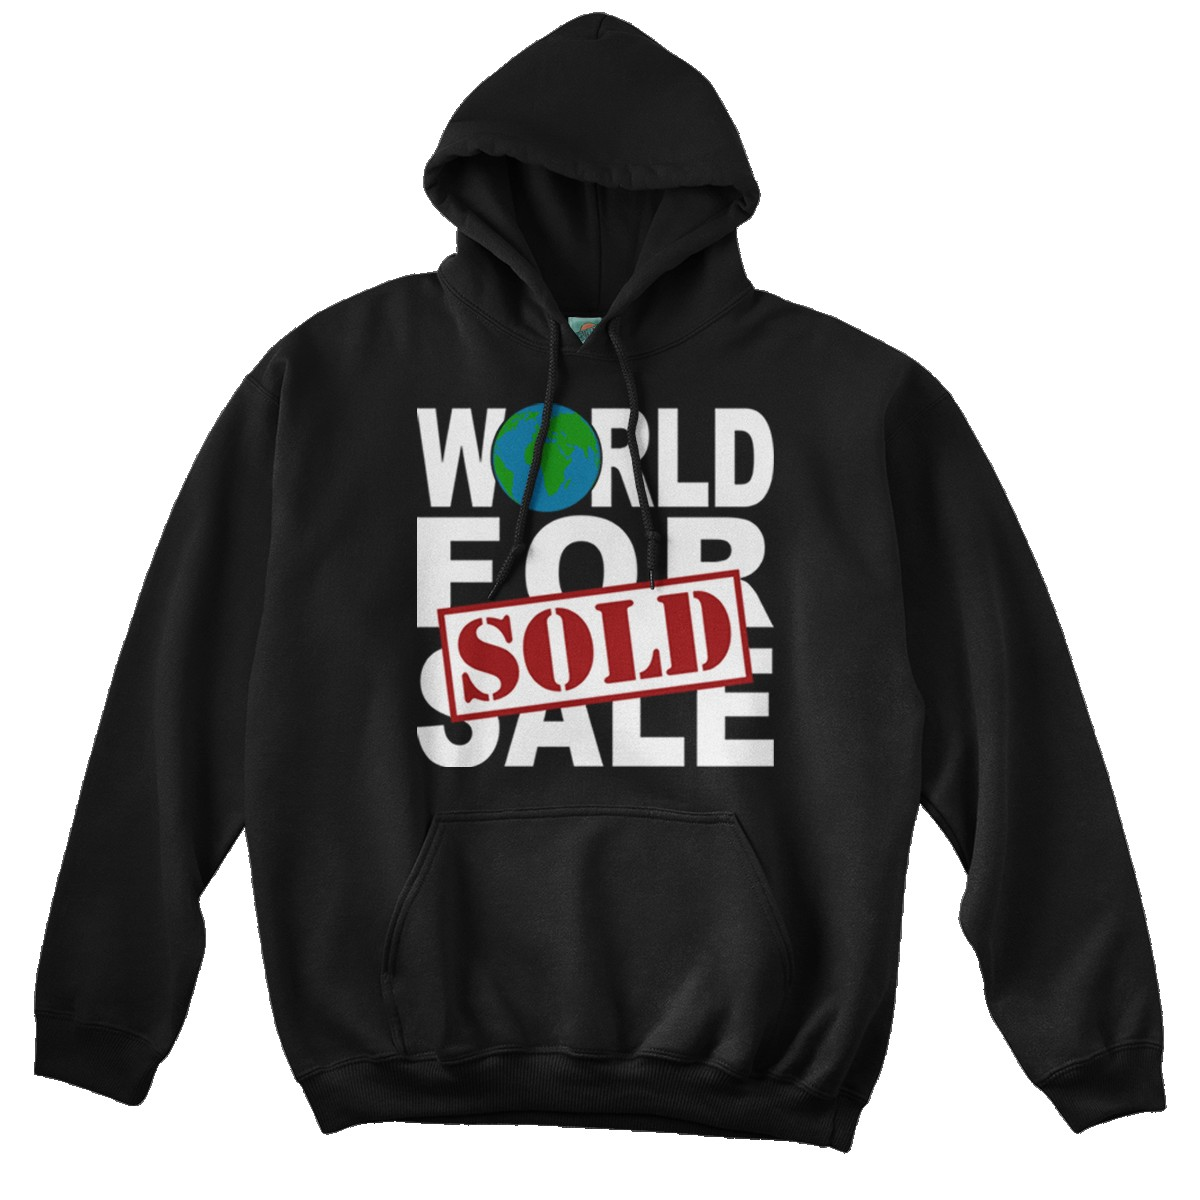 DAVID-BOWIE-inspired-THE-MAN-WHO-SOLD-THE-WORLD-Hoodie